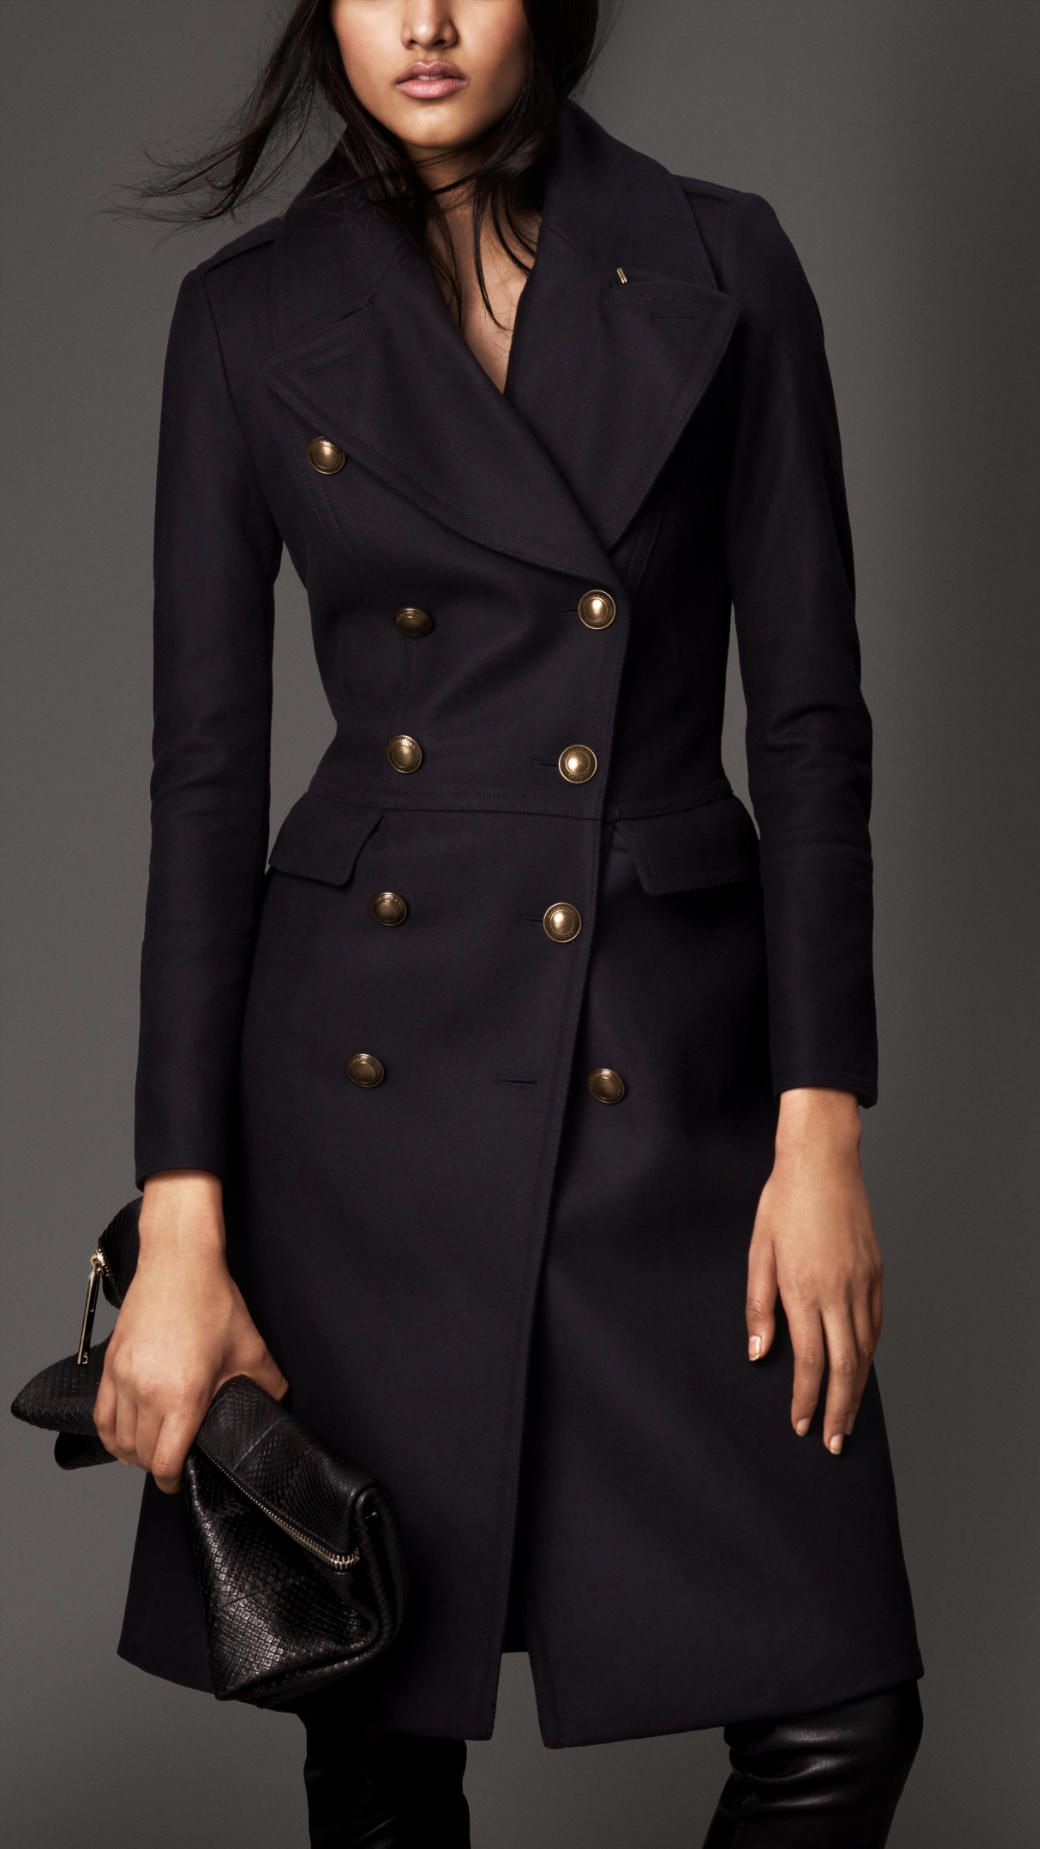 Burberry Wool Blend Fitted Military Coat | Co&Jack | Pinterest ...